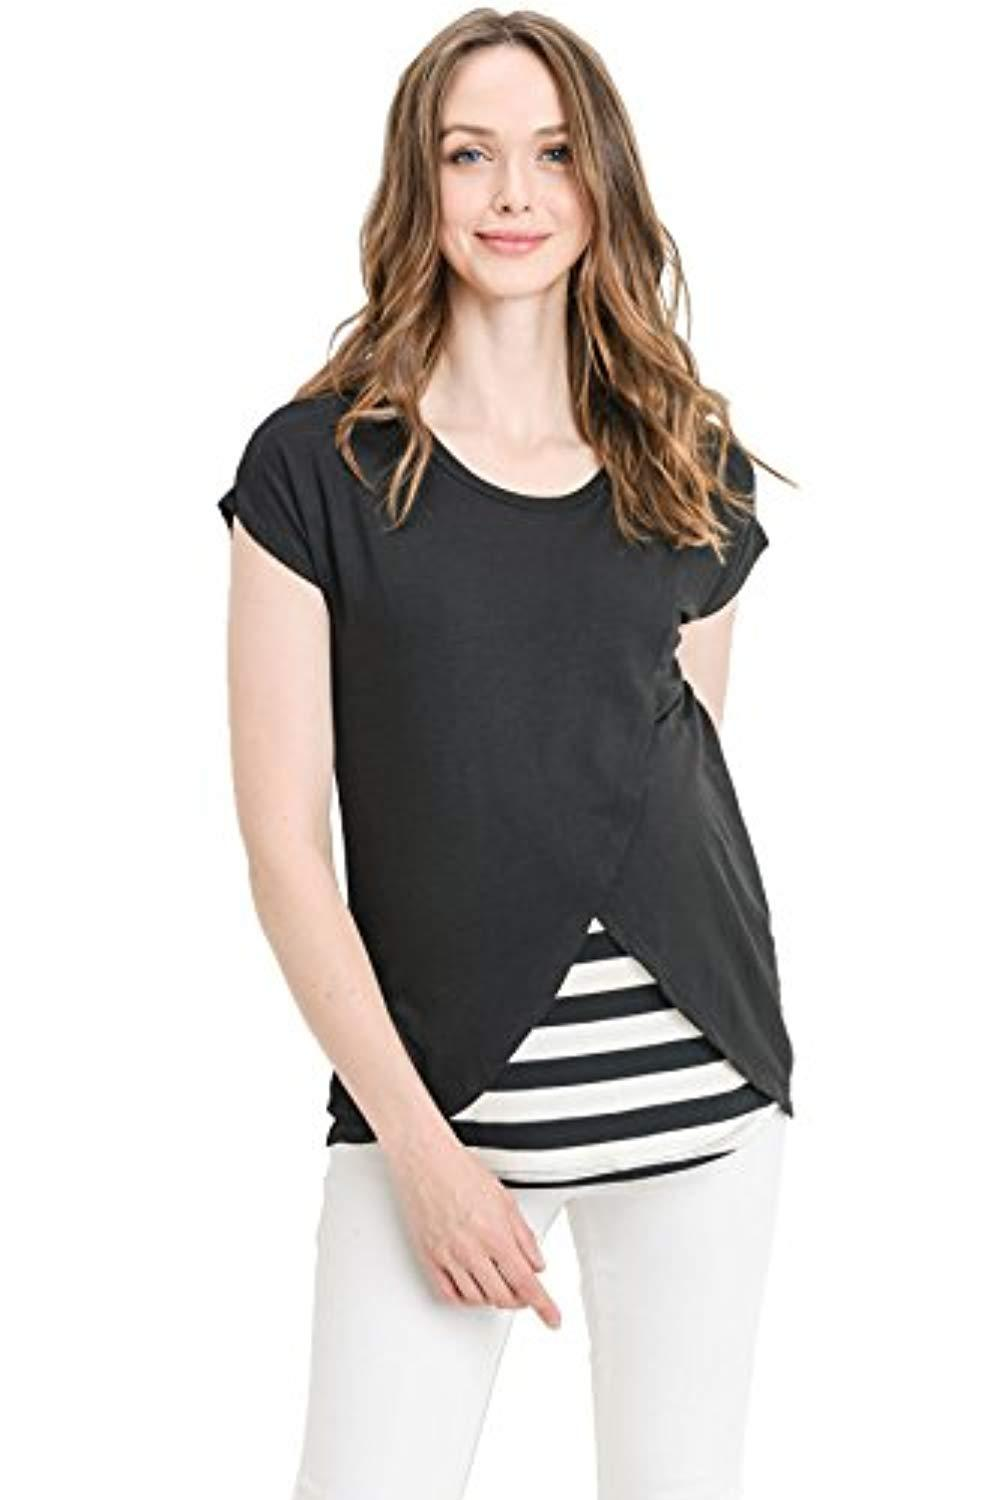 Asymmetrical Overlay Nursing Top - Mommylicious